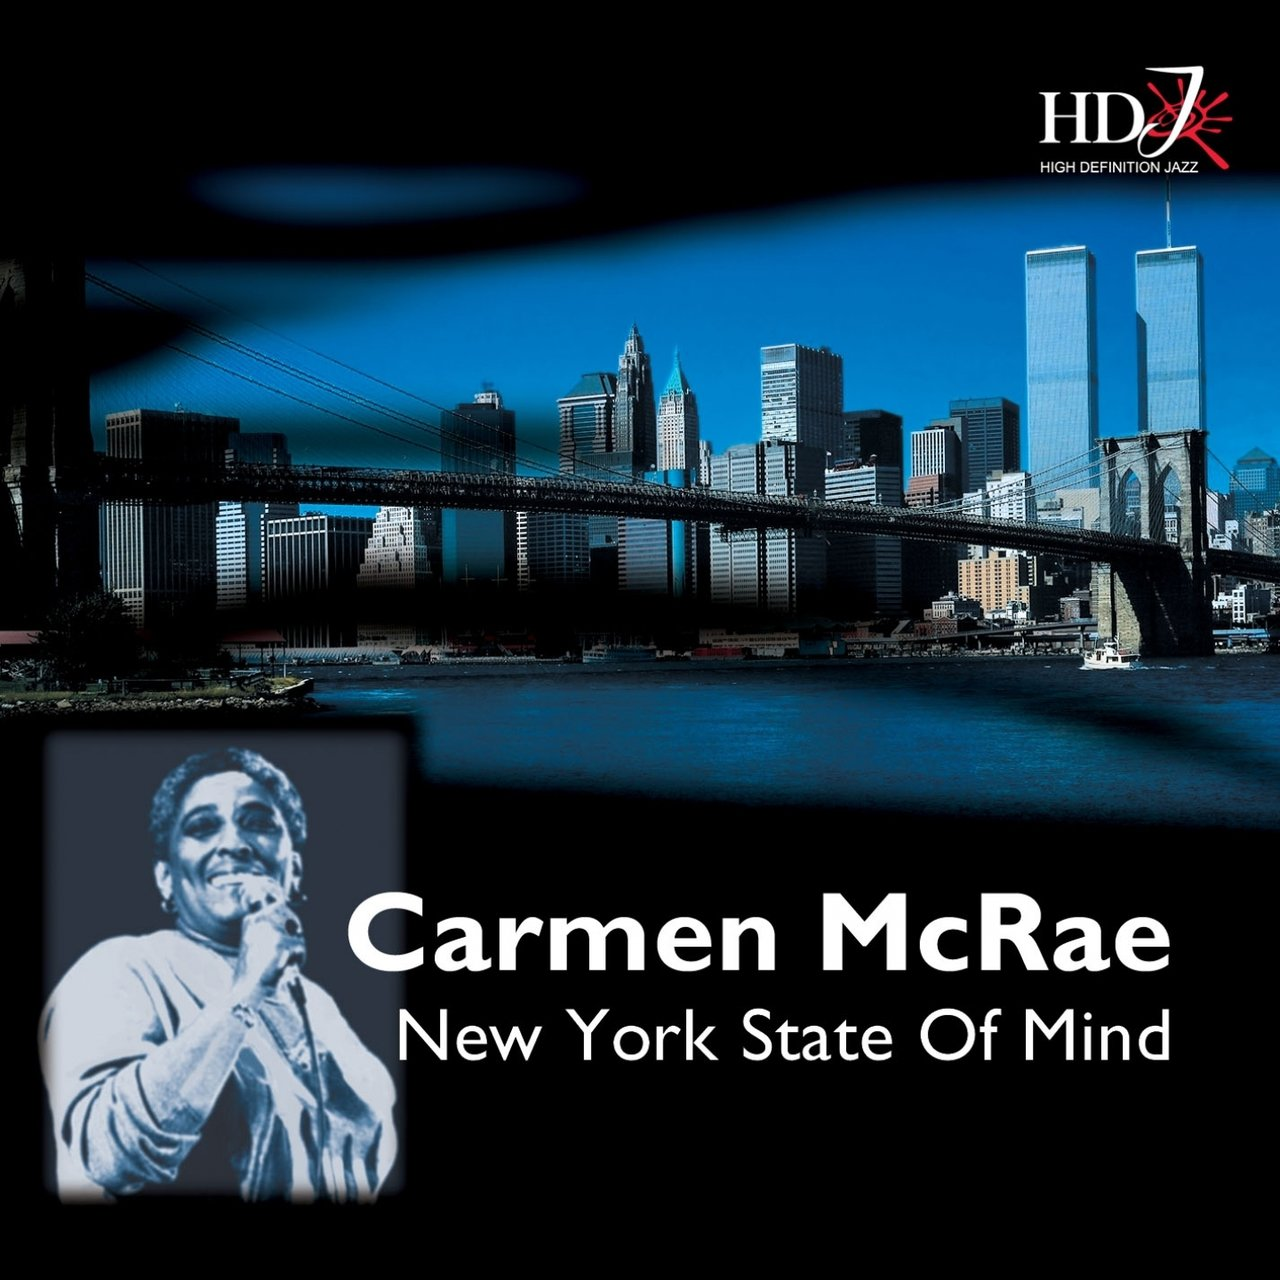 tidal: listen to new york state of mind on tidal